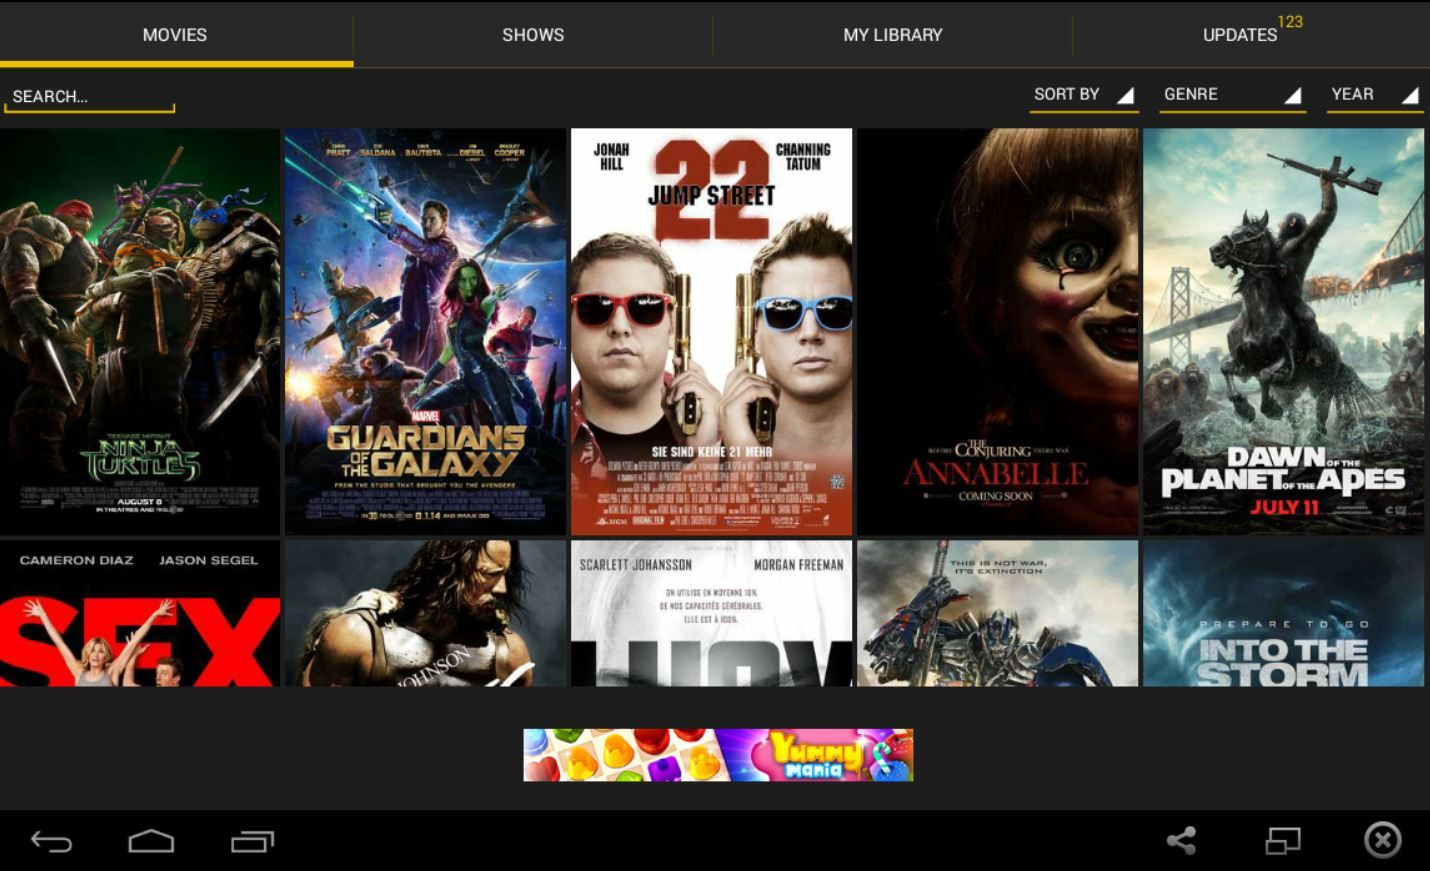 Run Show Box on your PC Showbox App Download Movies